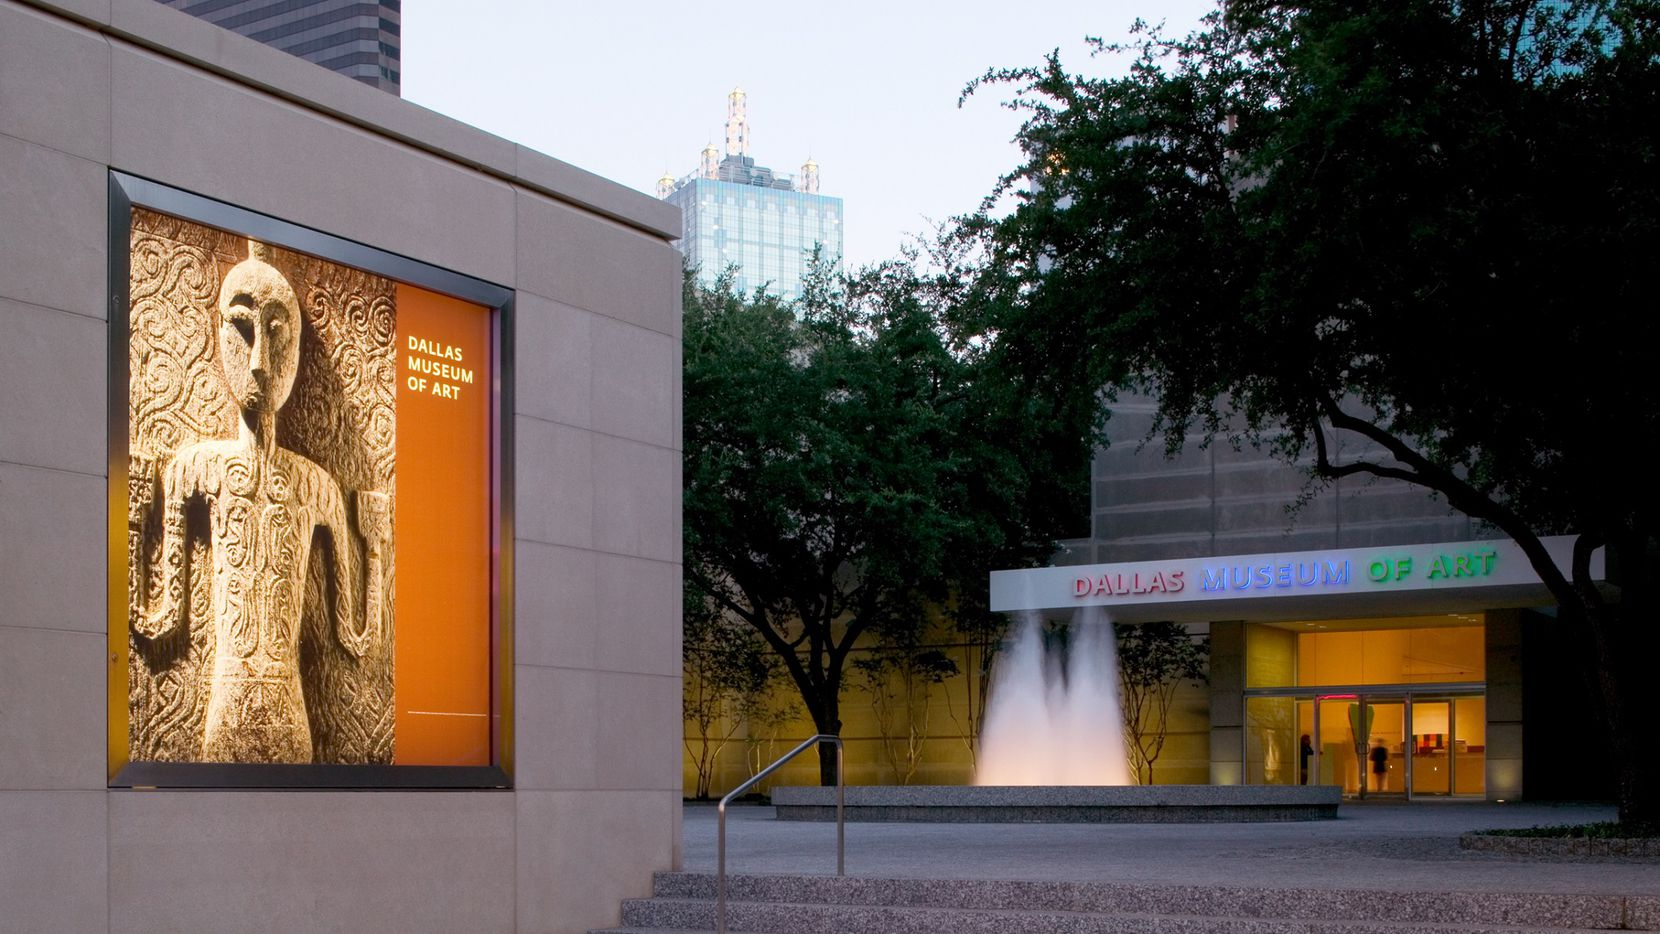 Dallas Museum of Art exterior.